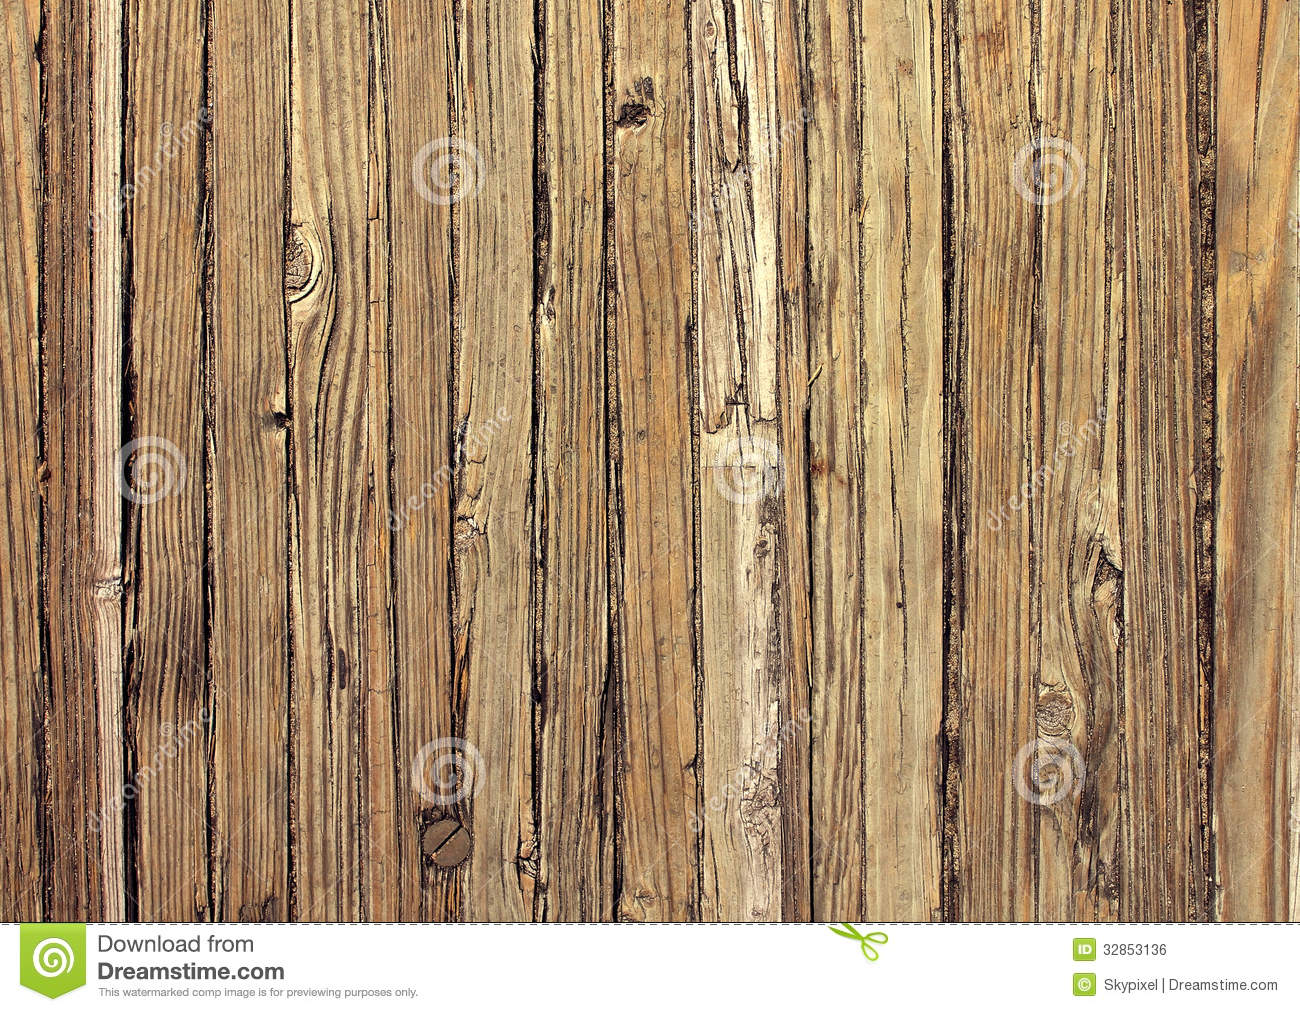 Download image Old Weathered Distressed Wood Background PC Android 1300x1012